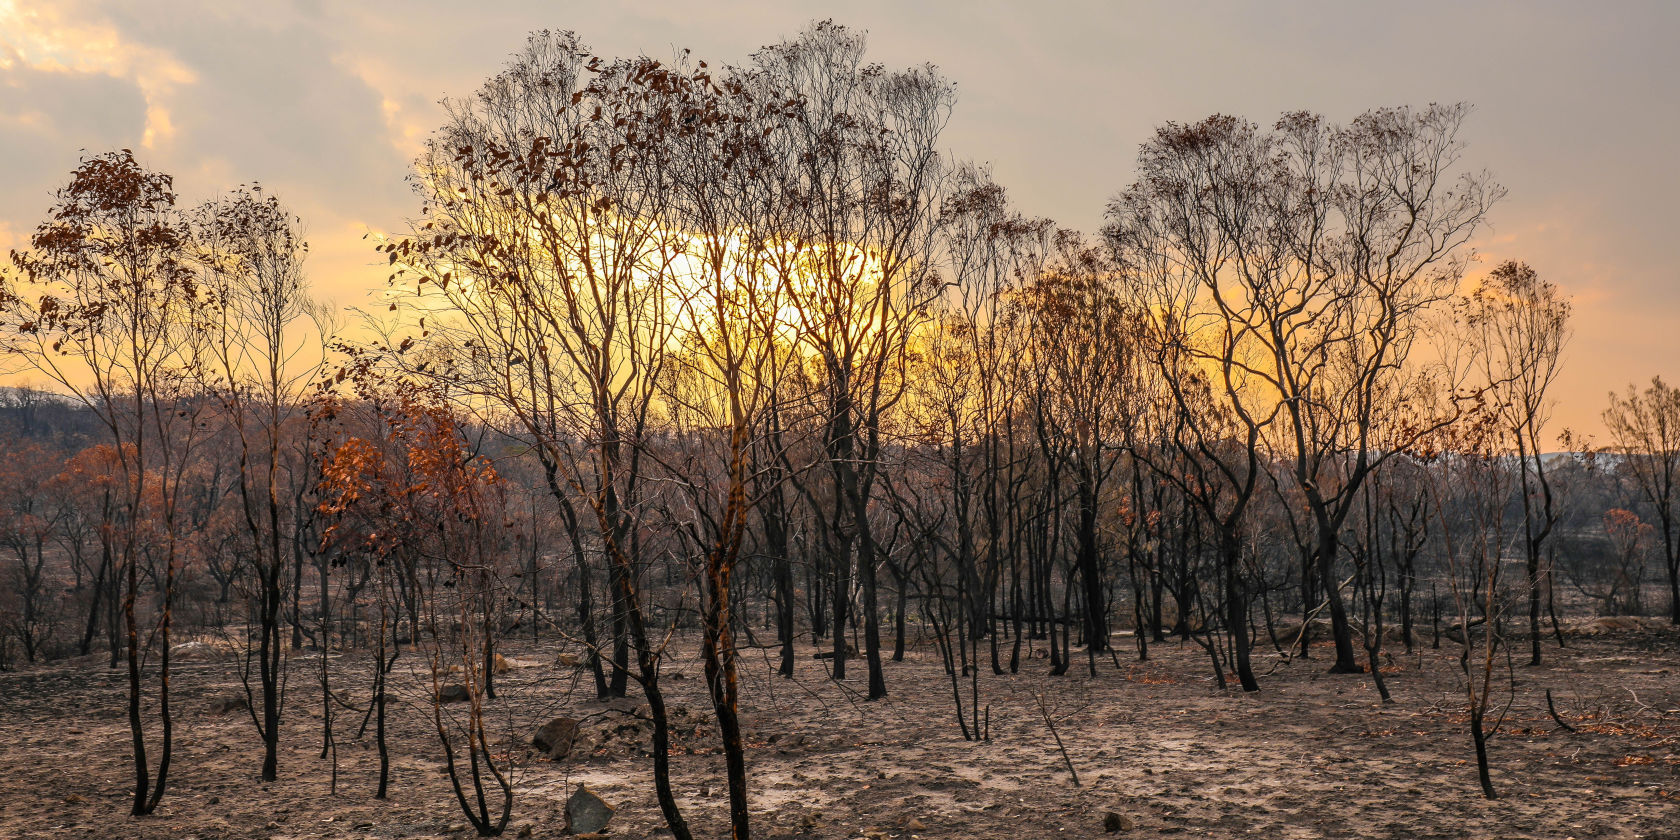 Suncorp assisting bushfire-affected customers across Australia